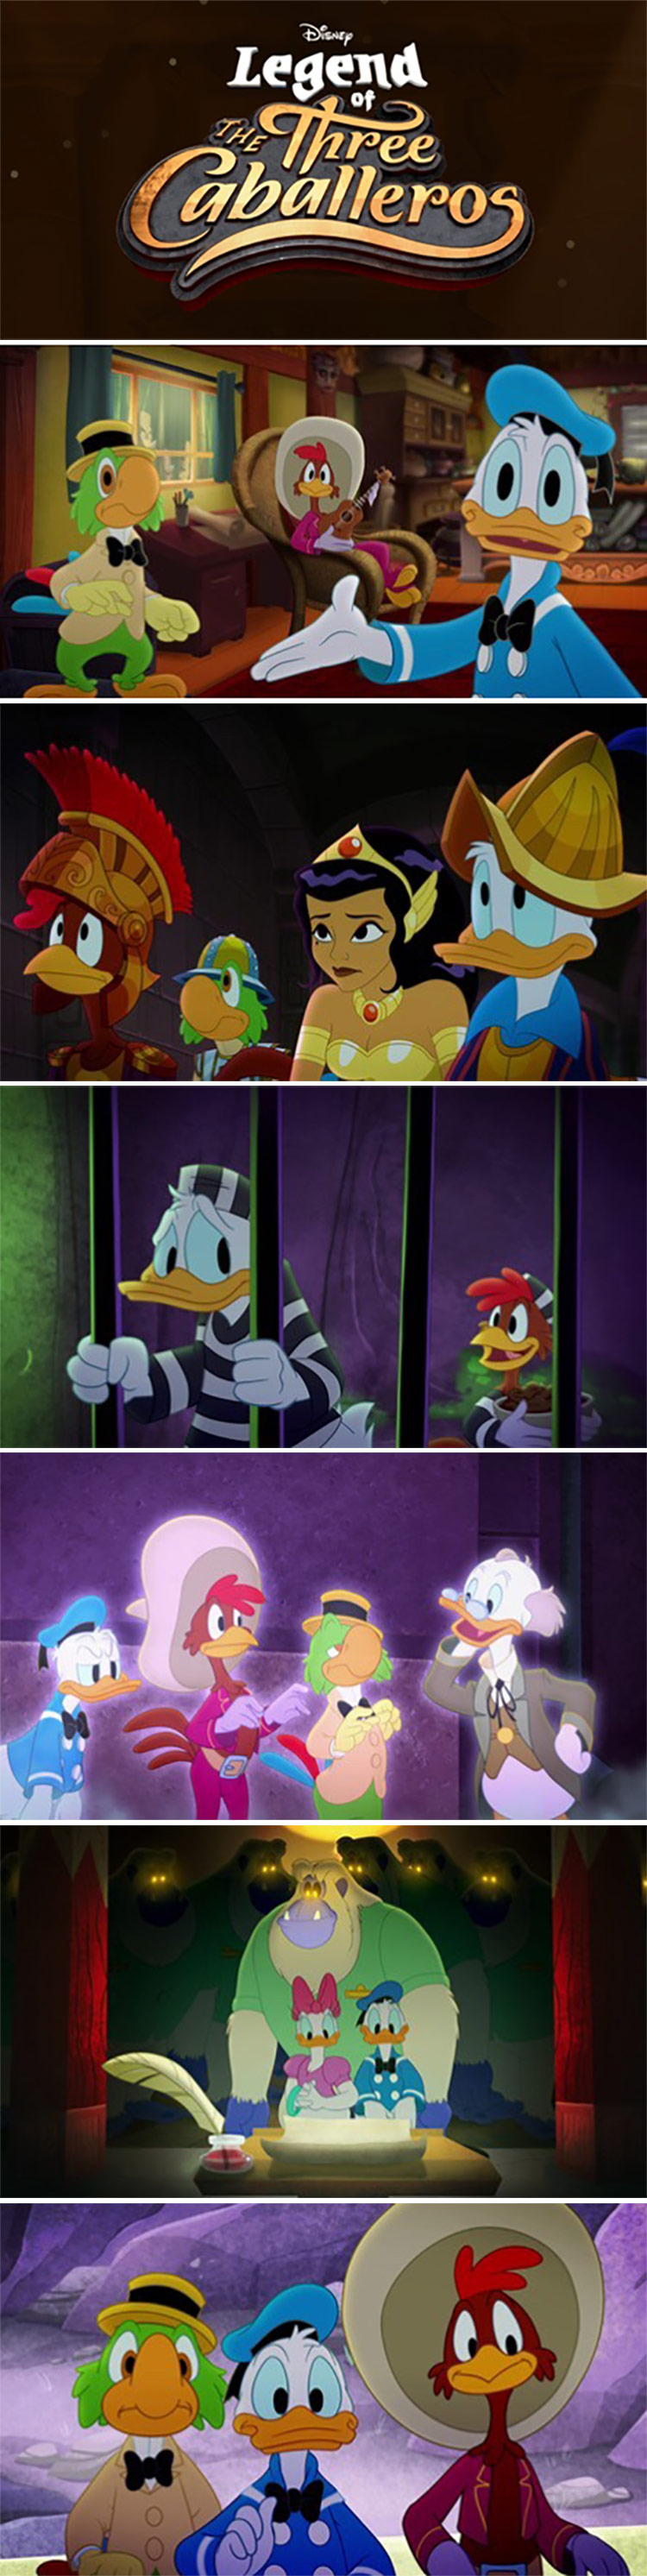 the three caballeros movie free download